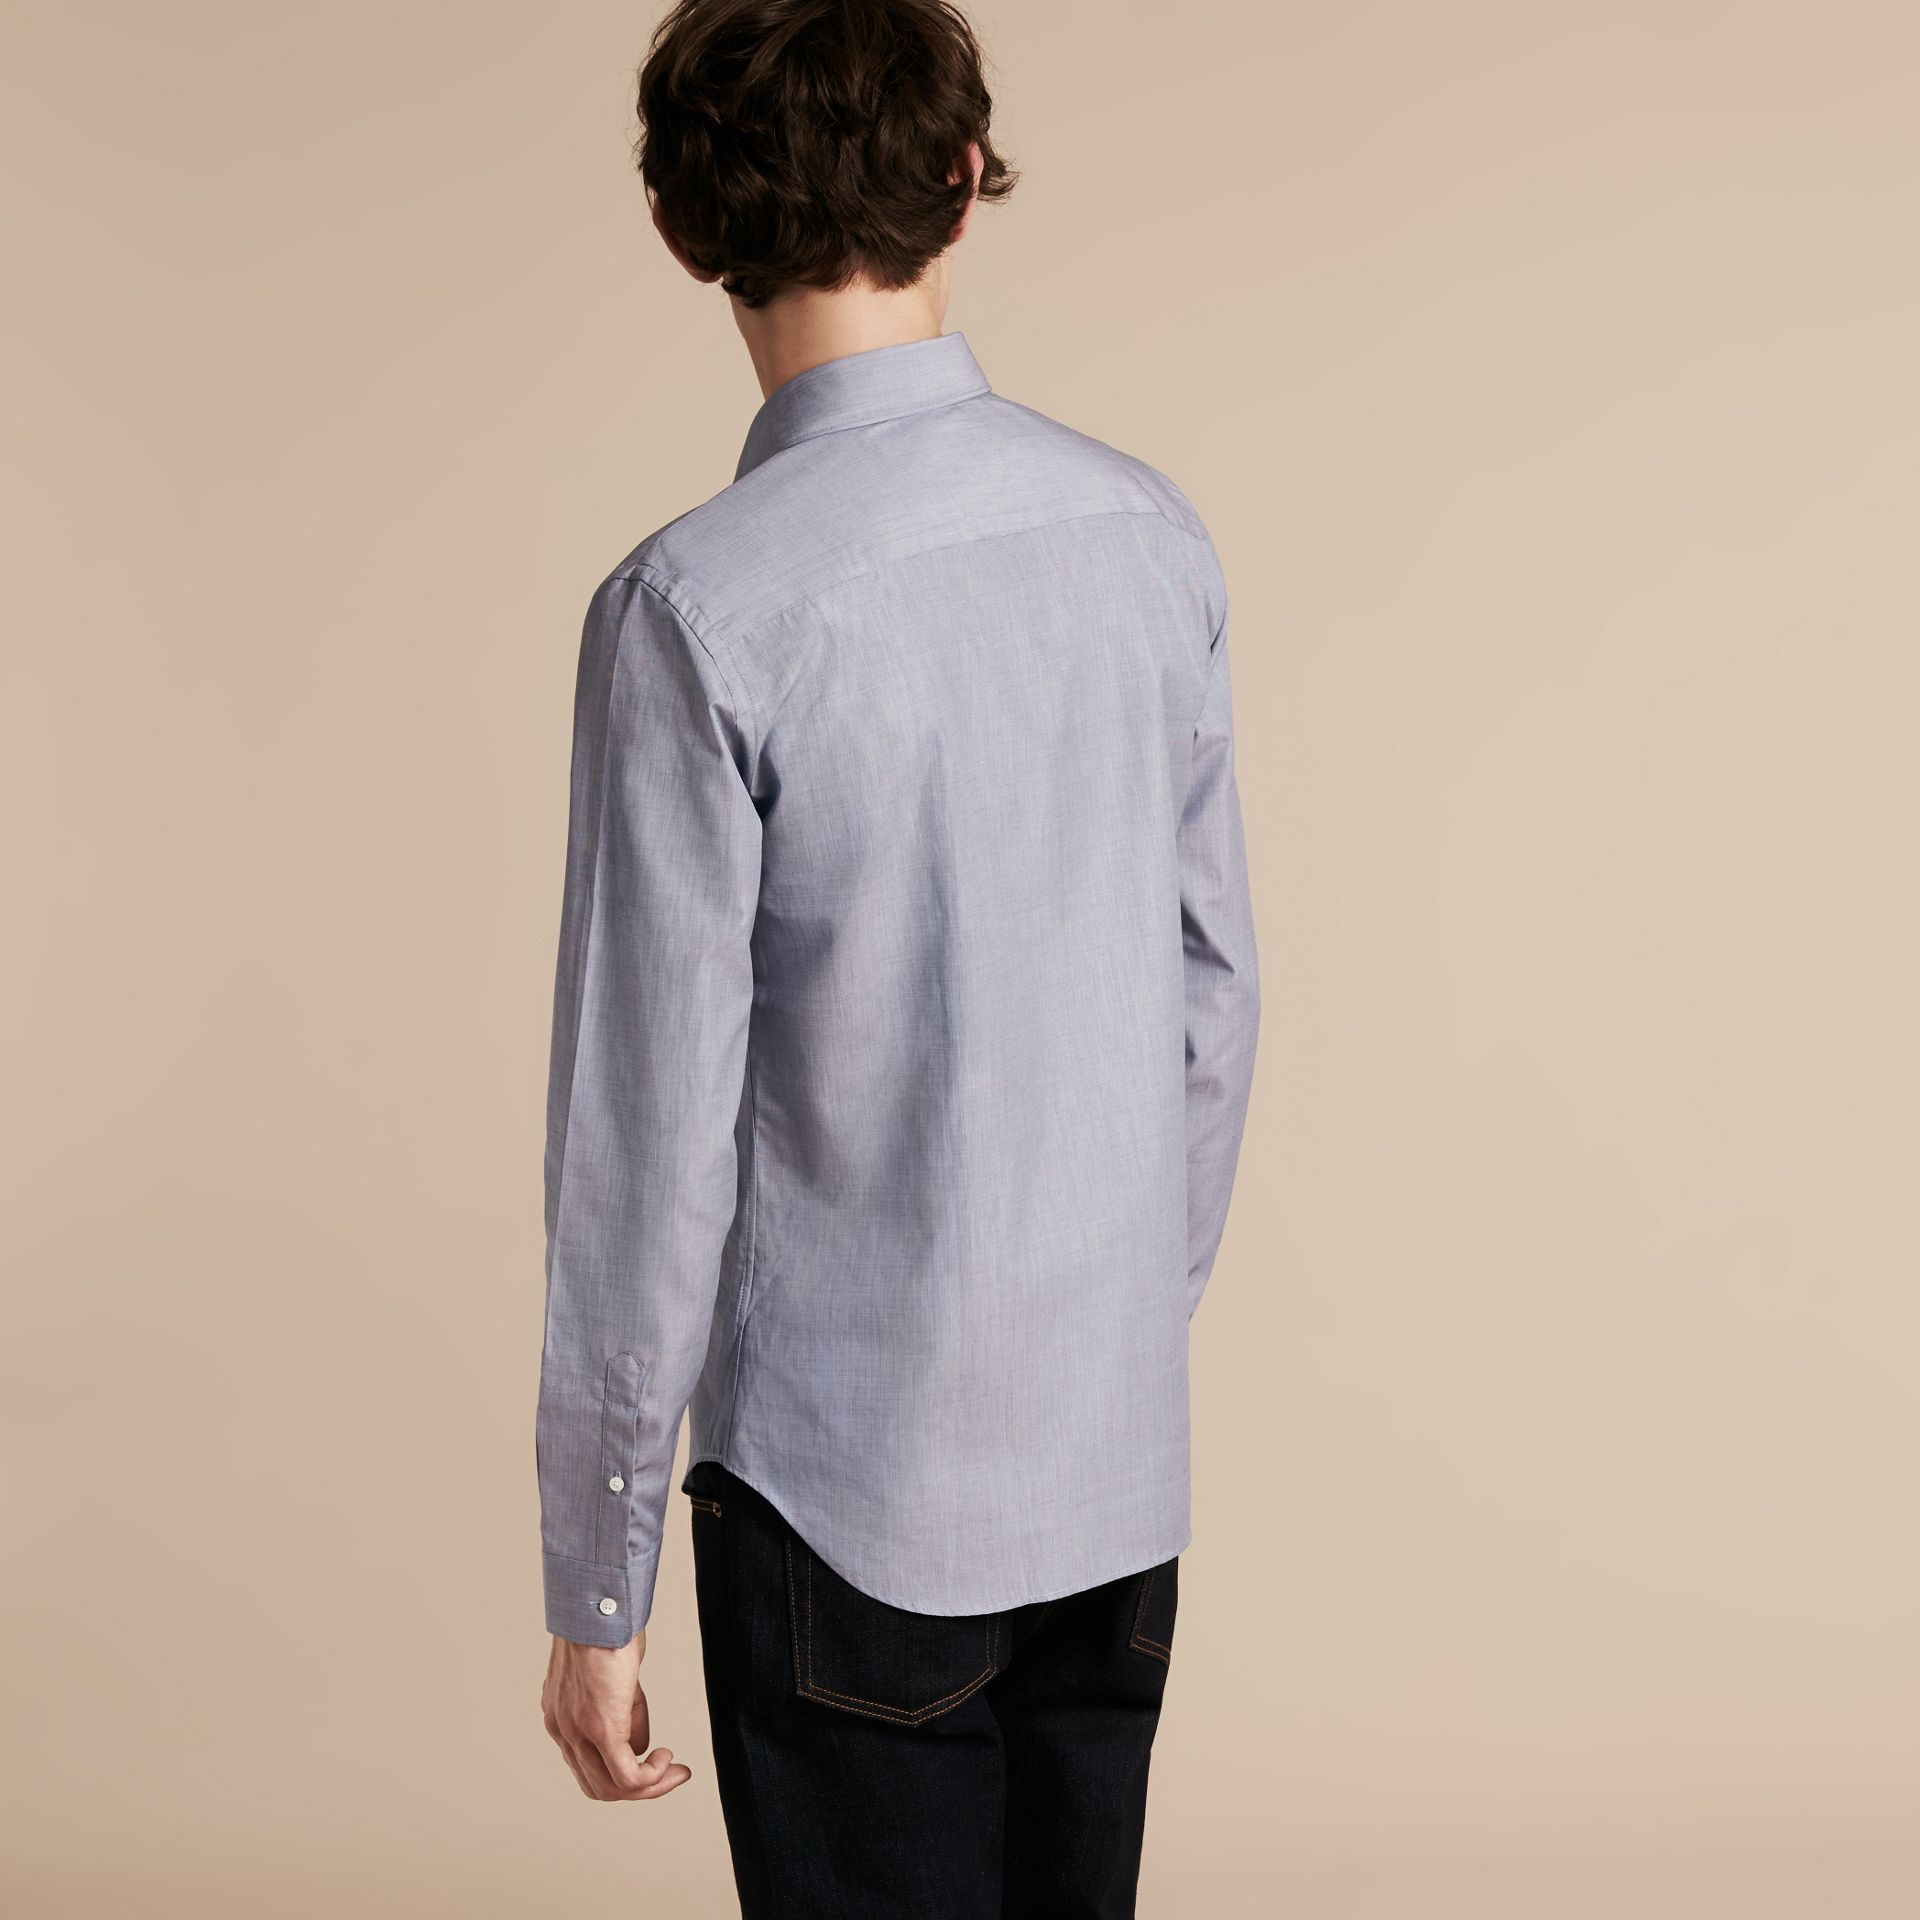 Light blue Mélange Cotton Shirt Light Blue - gallery image 3